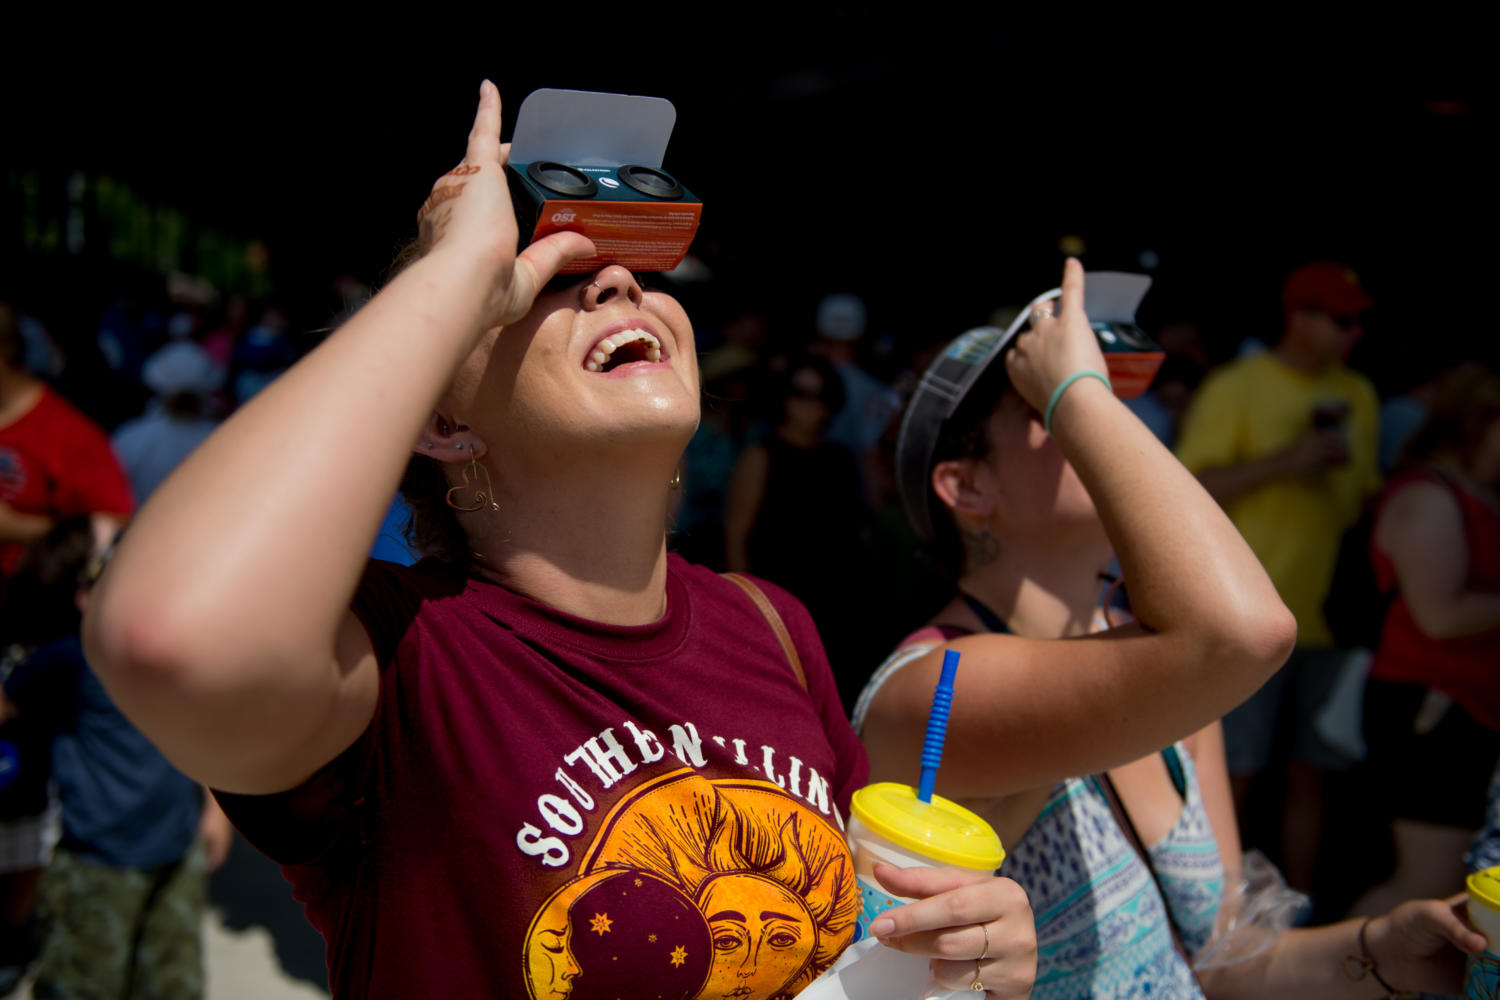 Susan Petrosky, of Springfield, watches the solar eclipse through special eclipse glasses Monday, Aug. 21, 2017, outside Saluki Stadium. Were so fortunate to be able to experience this today — its only a twice in a lifetime event, Petrosky said. Ive started planning the trip here years ago. (Brian Muñoz | @BrianMMunoz)